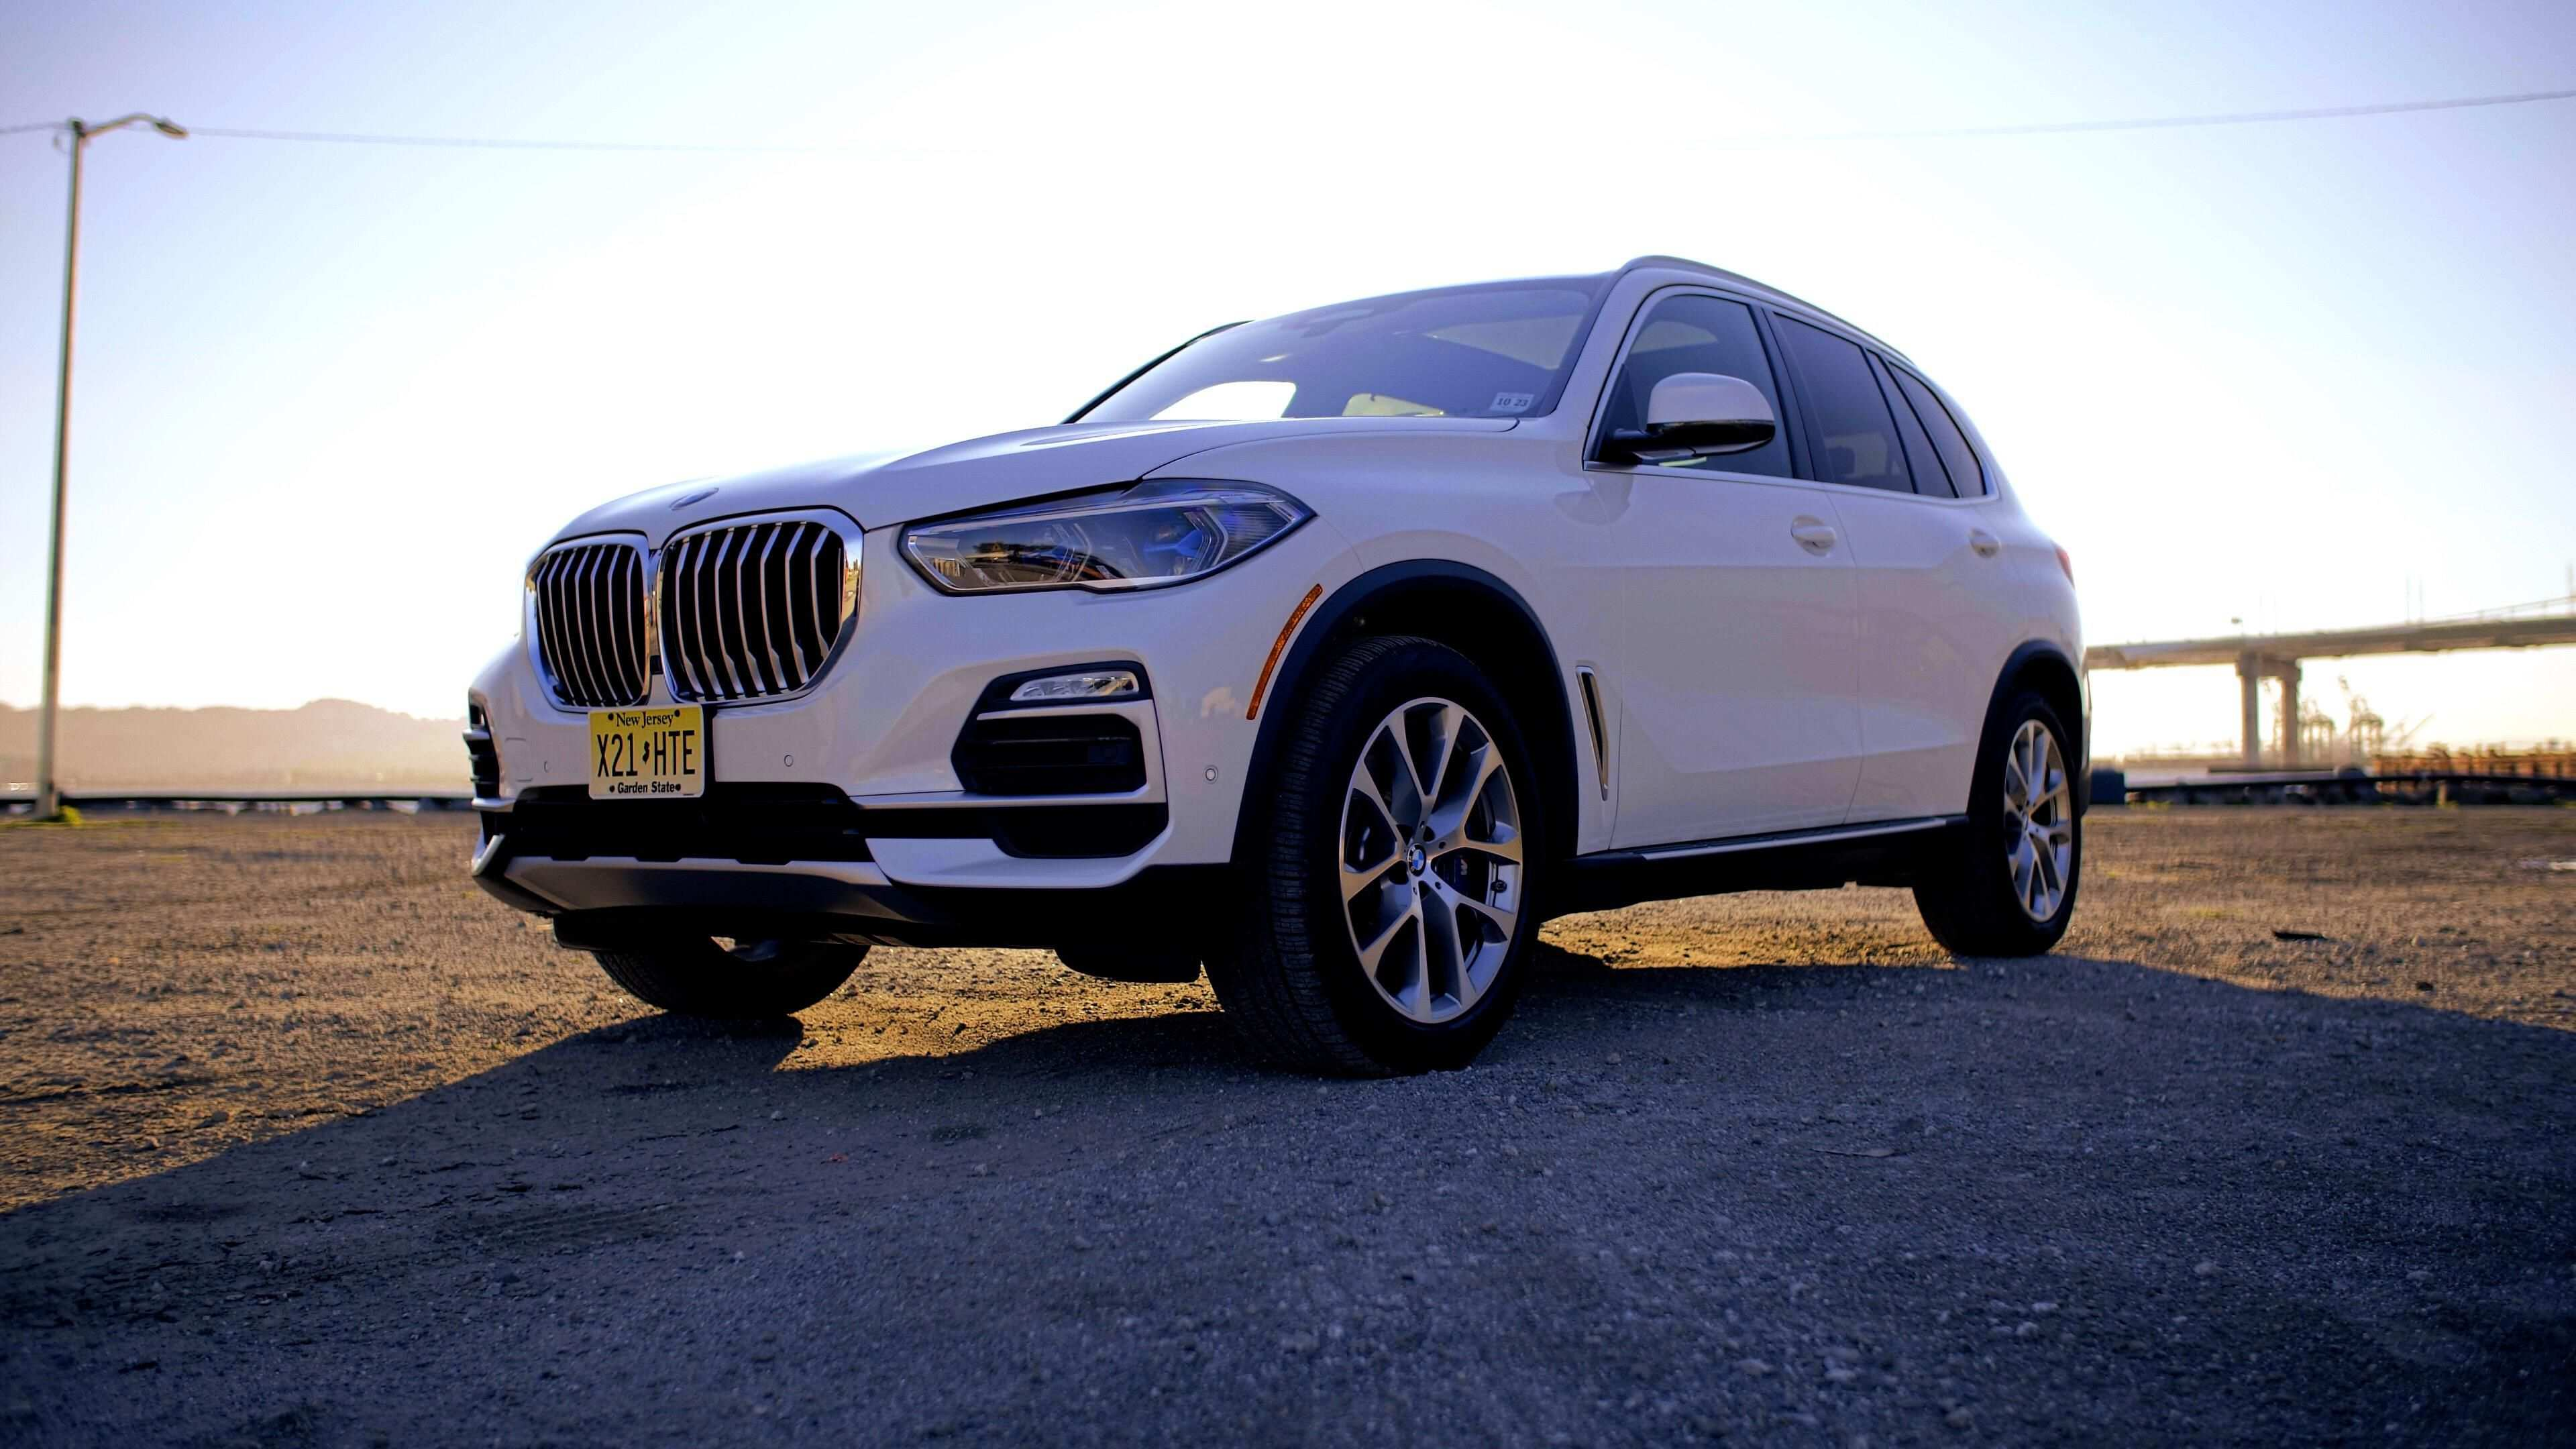 60 New When Does The 2020 Bmw X5 Come Out Interior